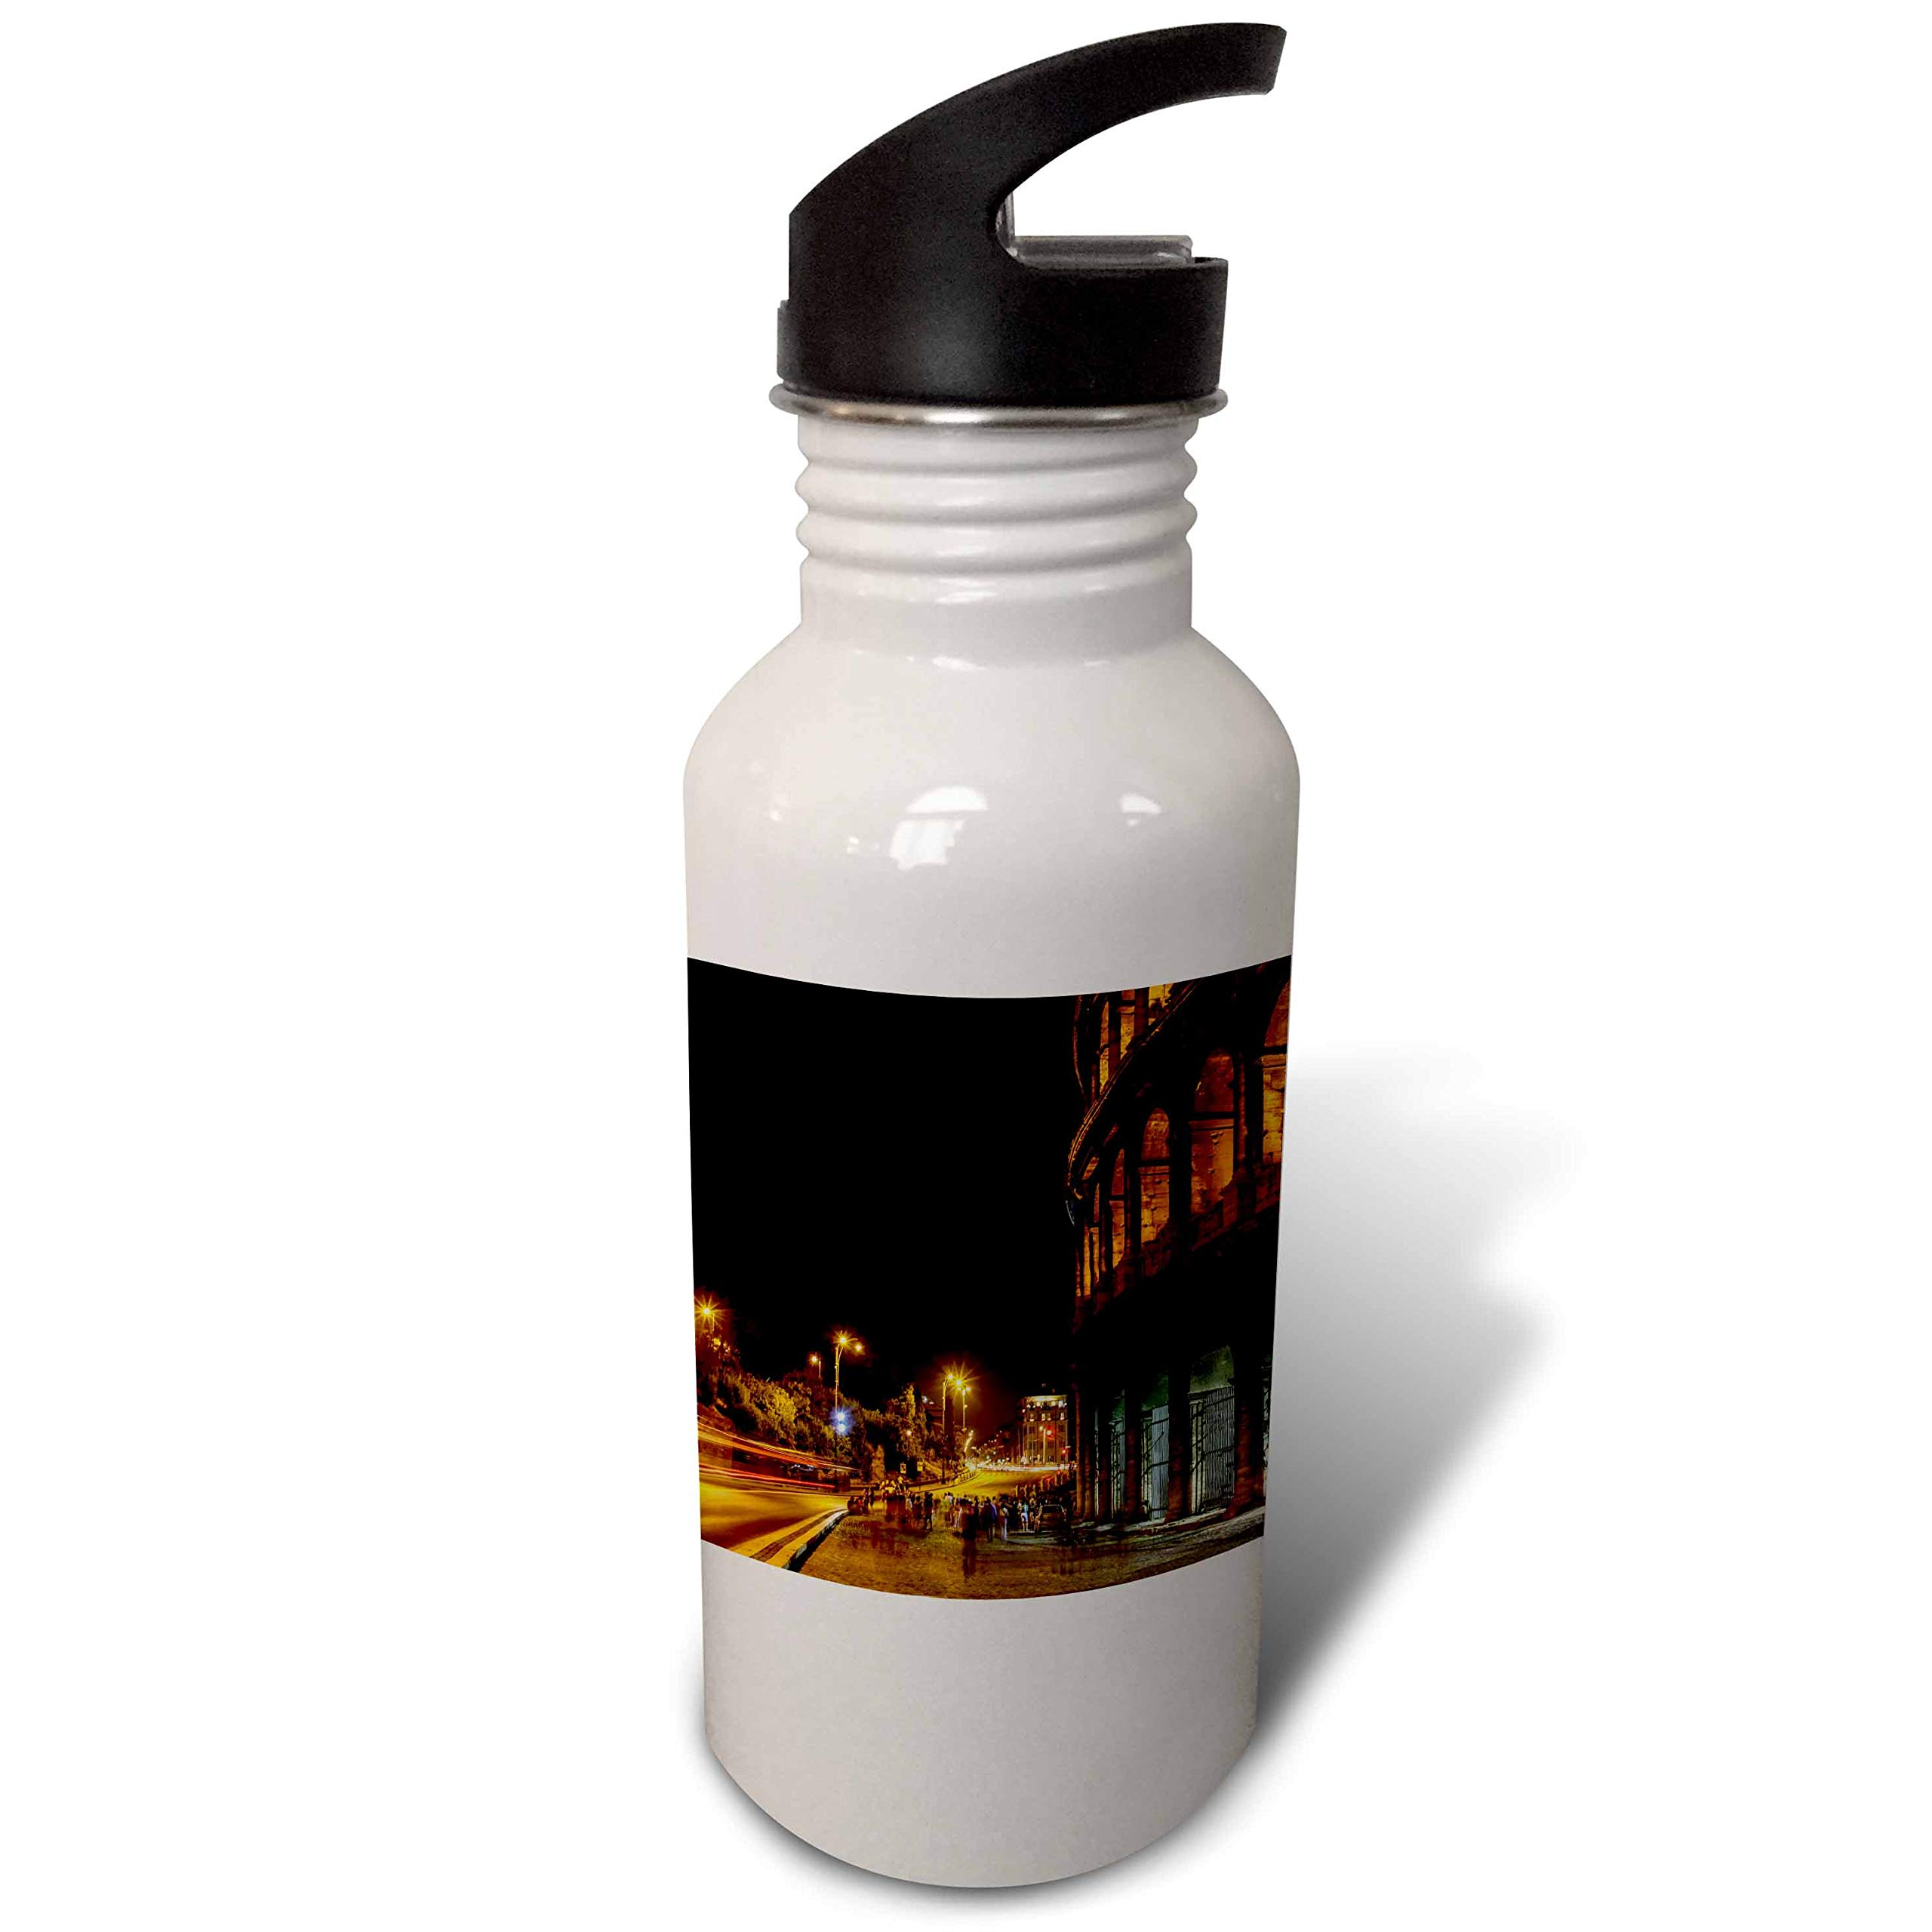 3dRose Elysium Photography - Cityscape - Colosseum at night, Rome, Italy - Flip Straw 21oz Water Bottle (wb_289613_2)